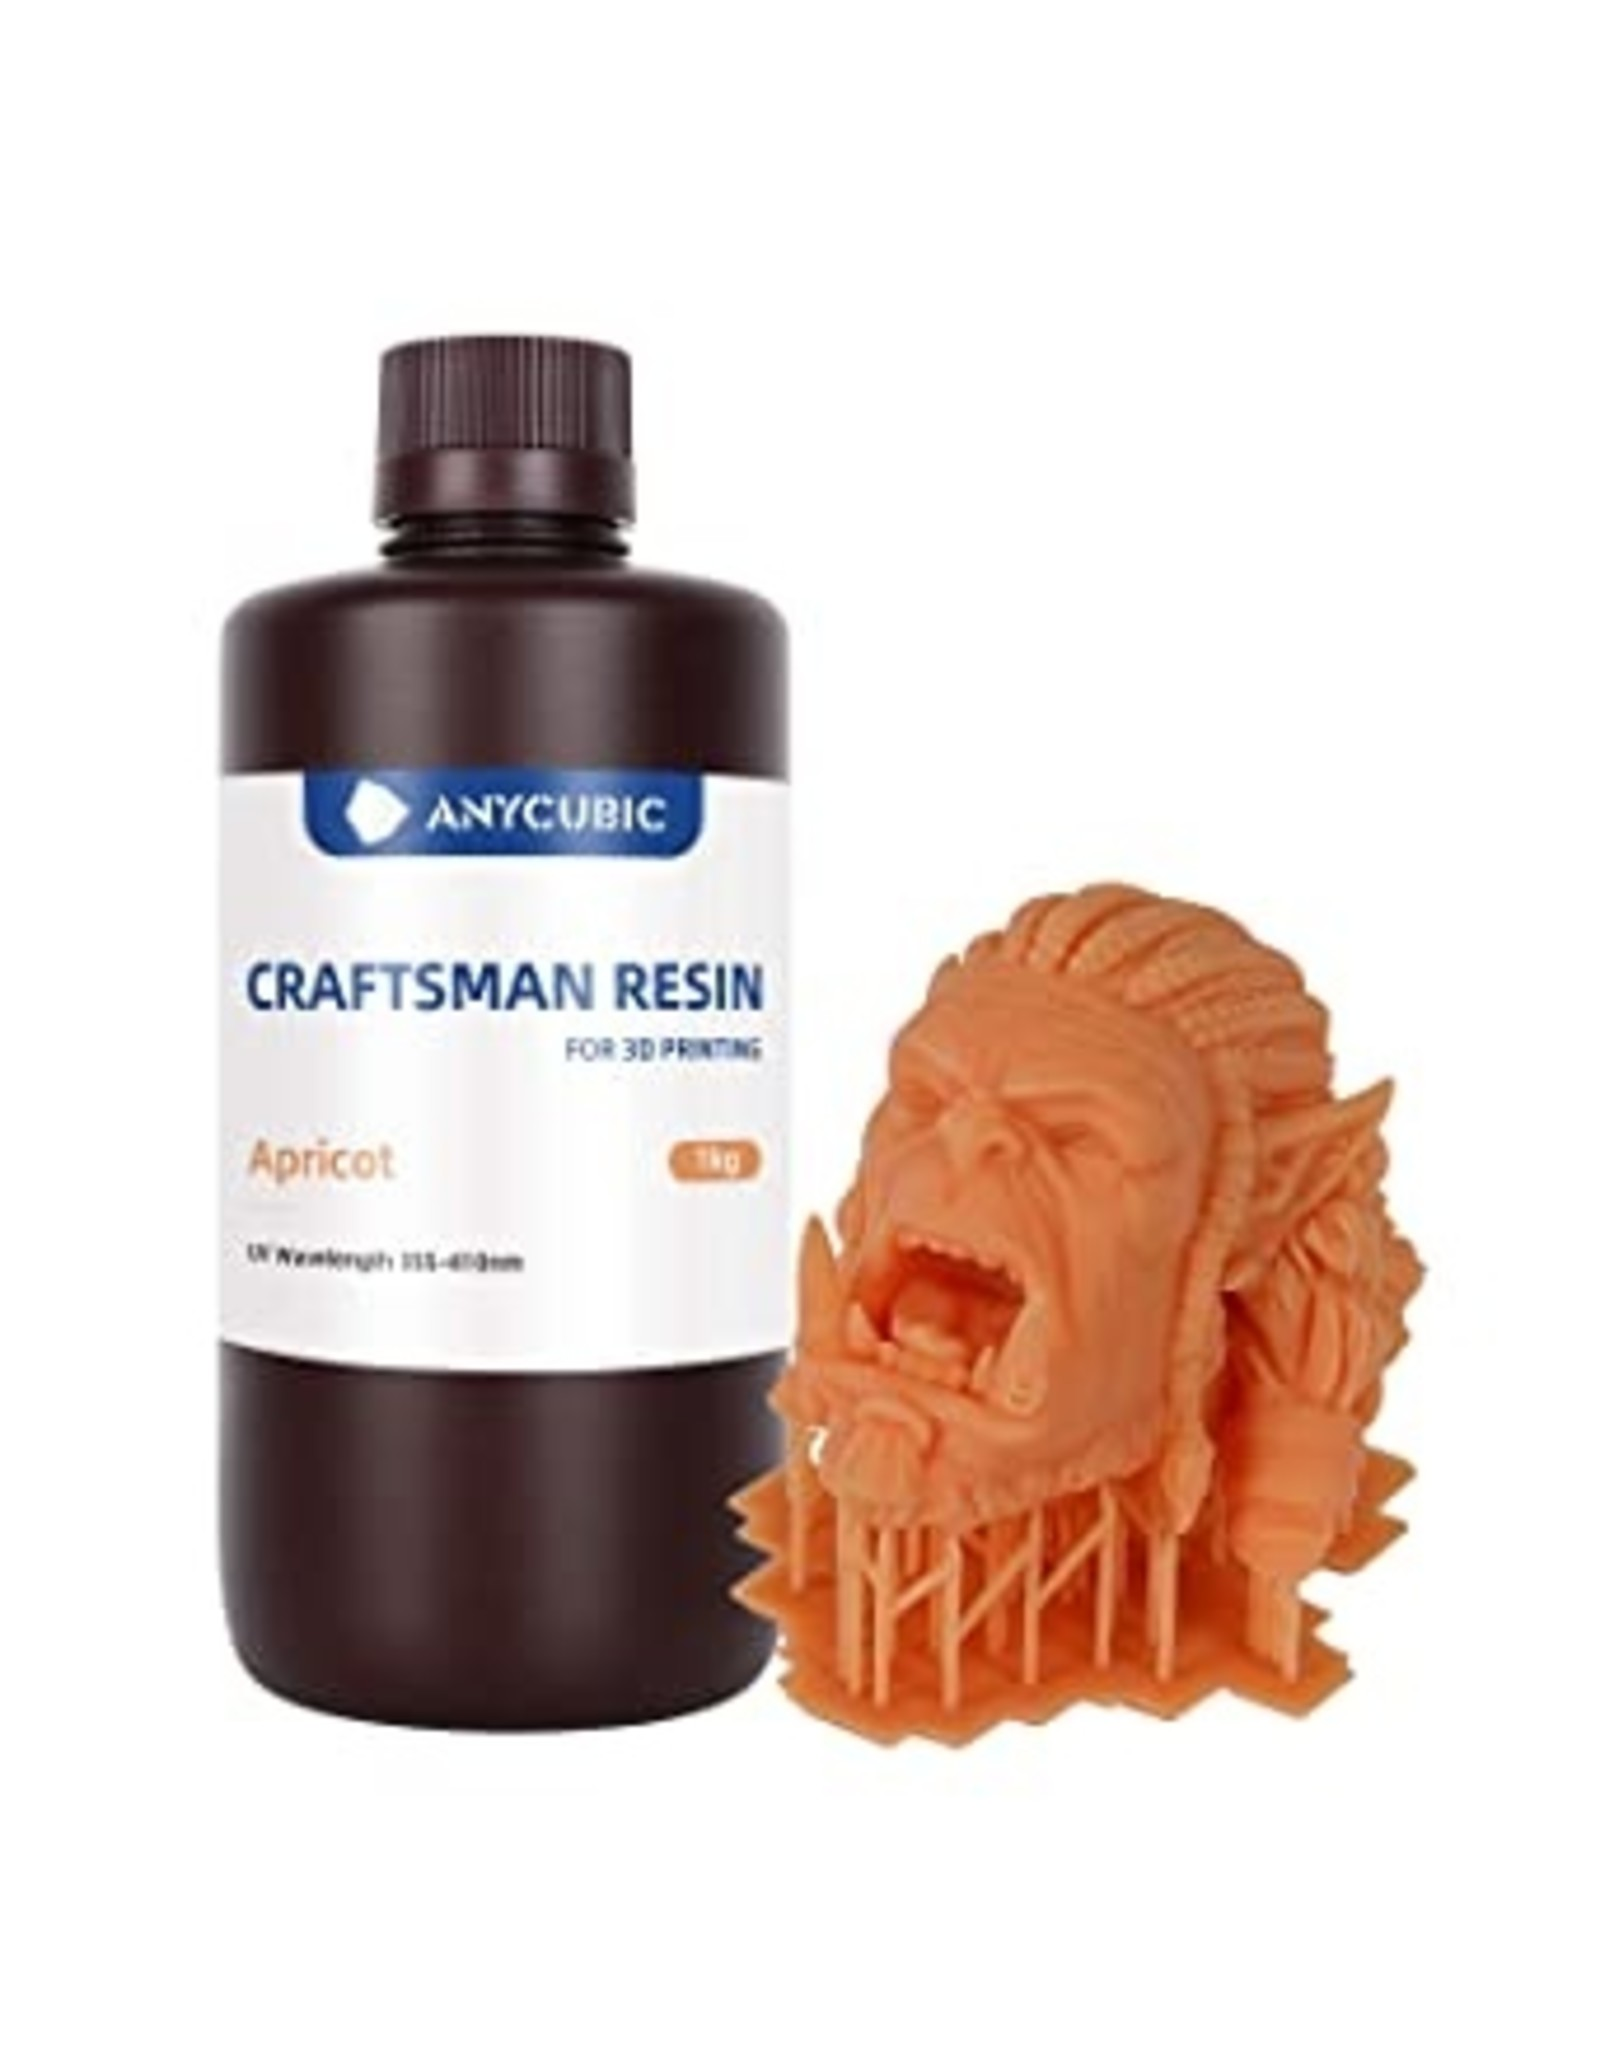 Anycubic Résine UV Craftsman Anycubic 1KG Apricot